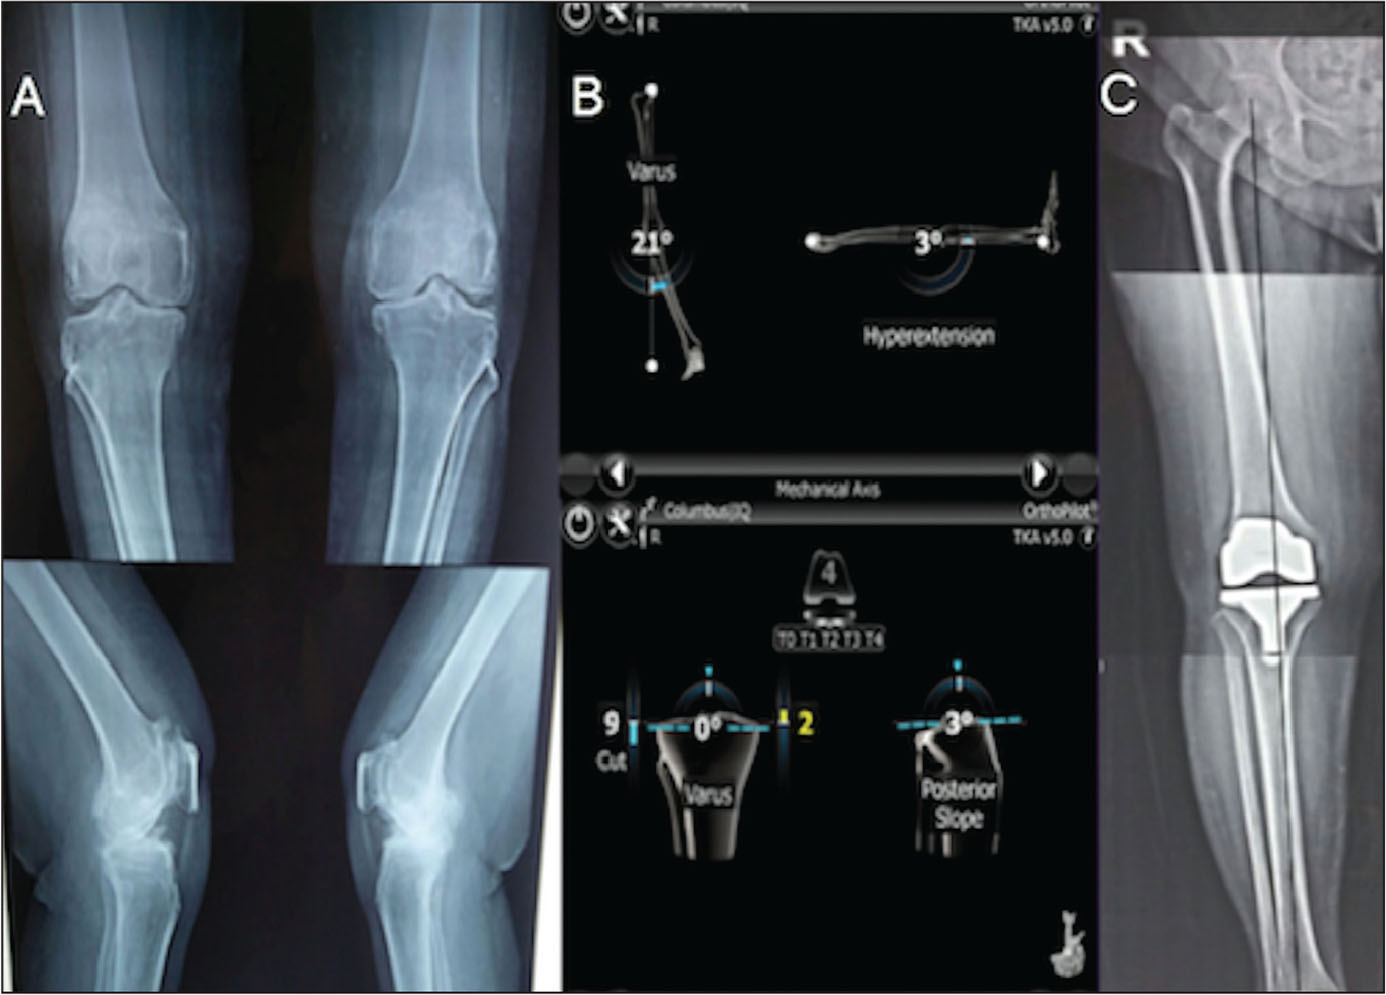 Radiographs of a patient with bilateral varus knee deformity (A). OrthoPilot (Aesculap AG & Co, Tuttlingen, Germany) computer-assisted navigation illustrating the patient's mechanical axis and planned tibial resection to restore neutral alignment (B). Postoperative long leg radiograph showing restoration of the mechanical axis (C).